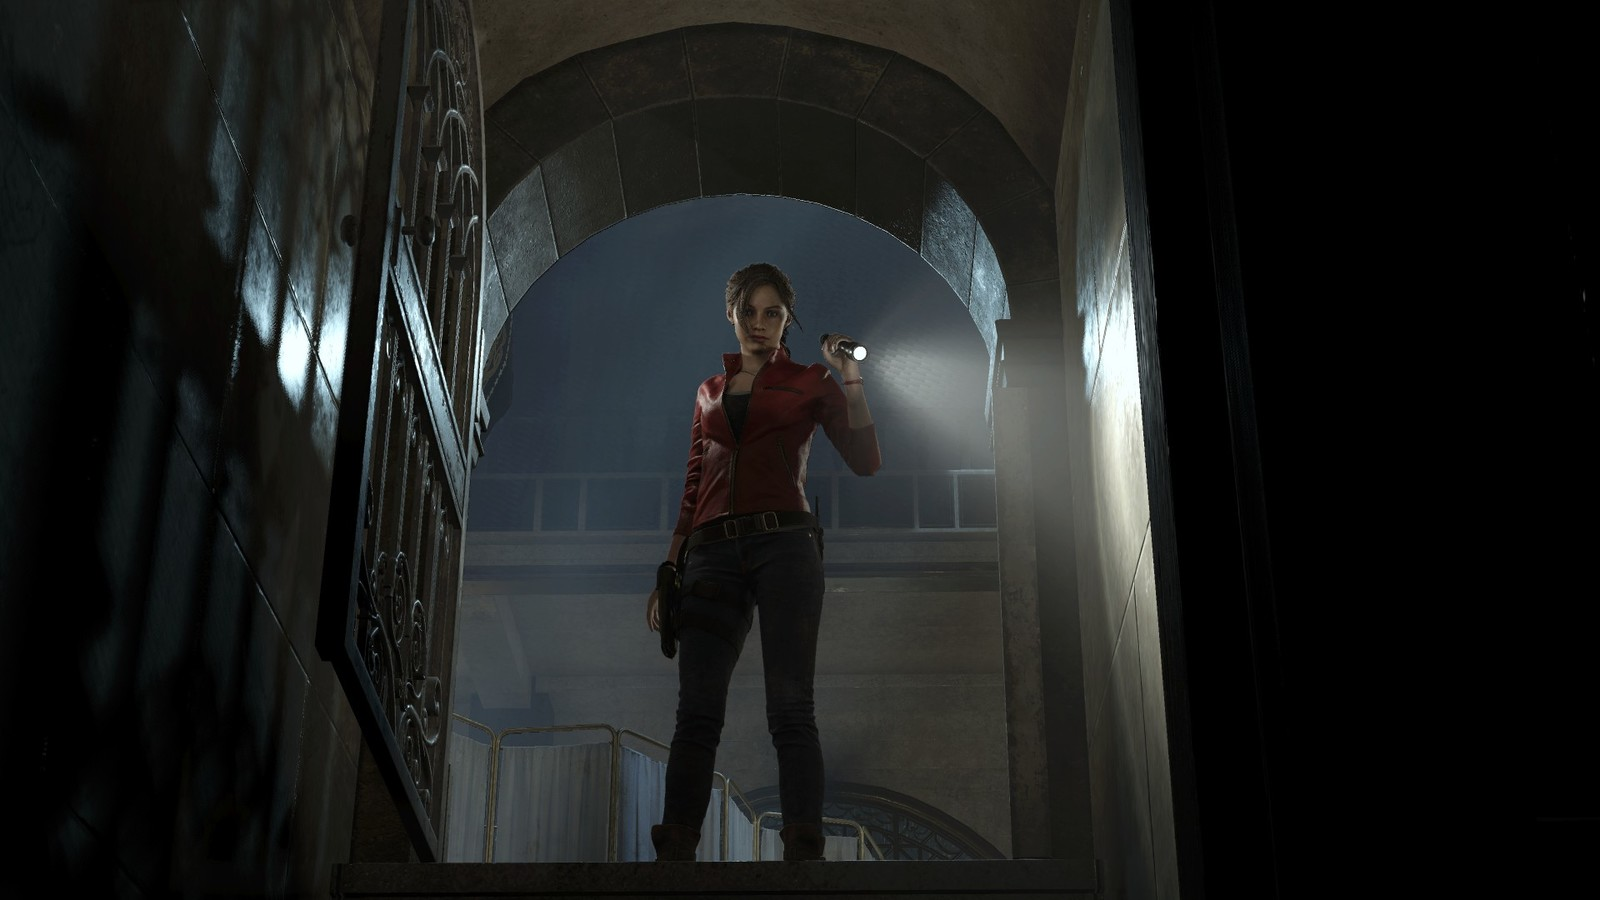 Capcom Announces 1 Shot Demo For New Resident Evil 2 Gameaxis